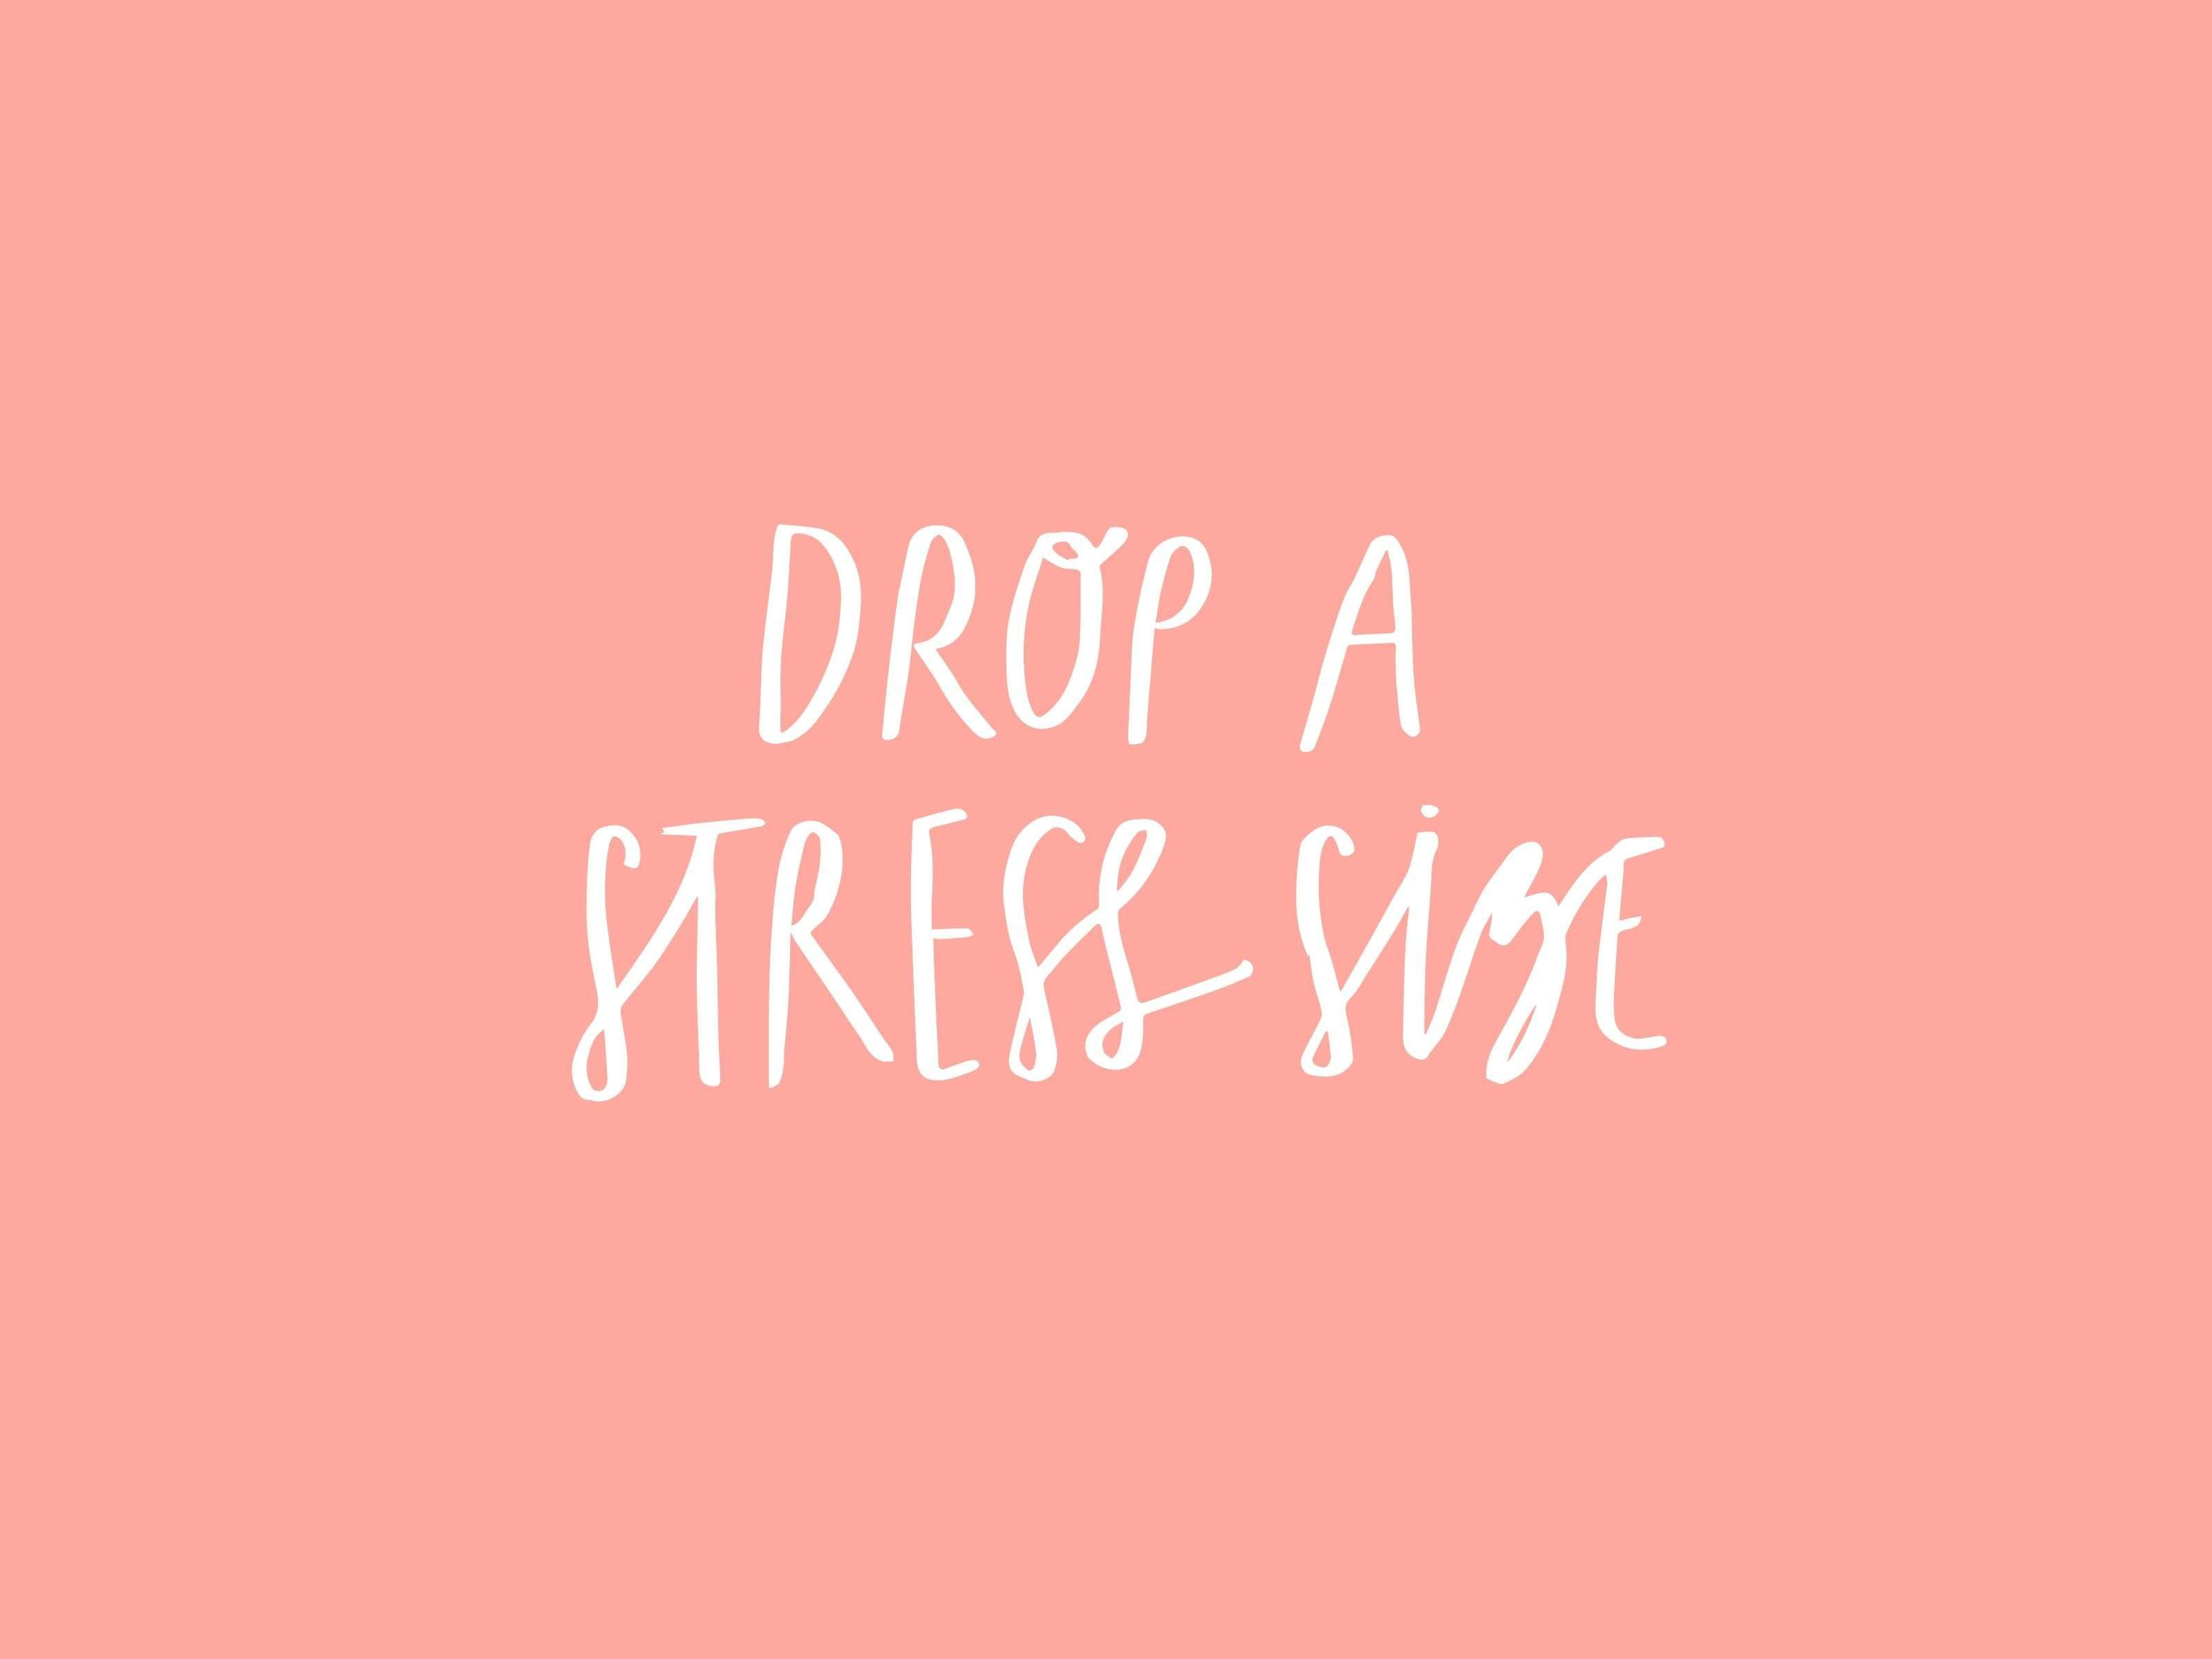 Inspirational Quotes Motivation Fitness Lovely Luxury Motivational Desktop W Inspirational Desktop Wallpaper Desktop Background Quote Desktop Wallpapers Tumblr